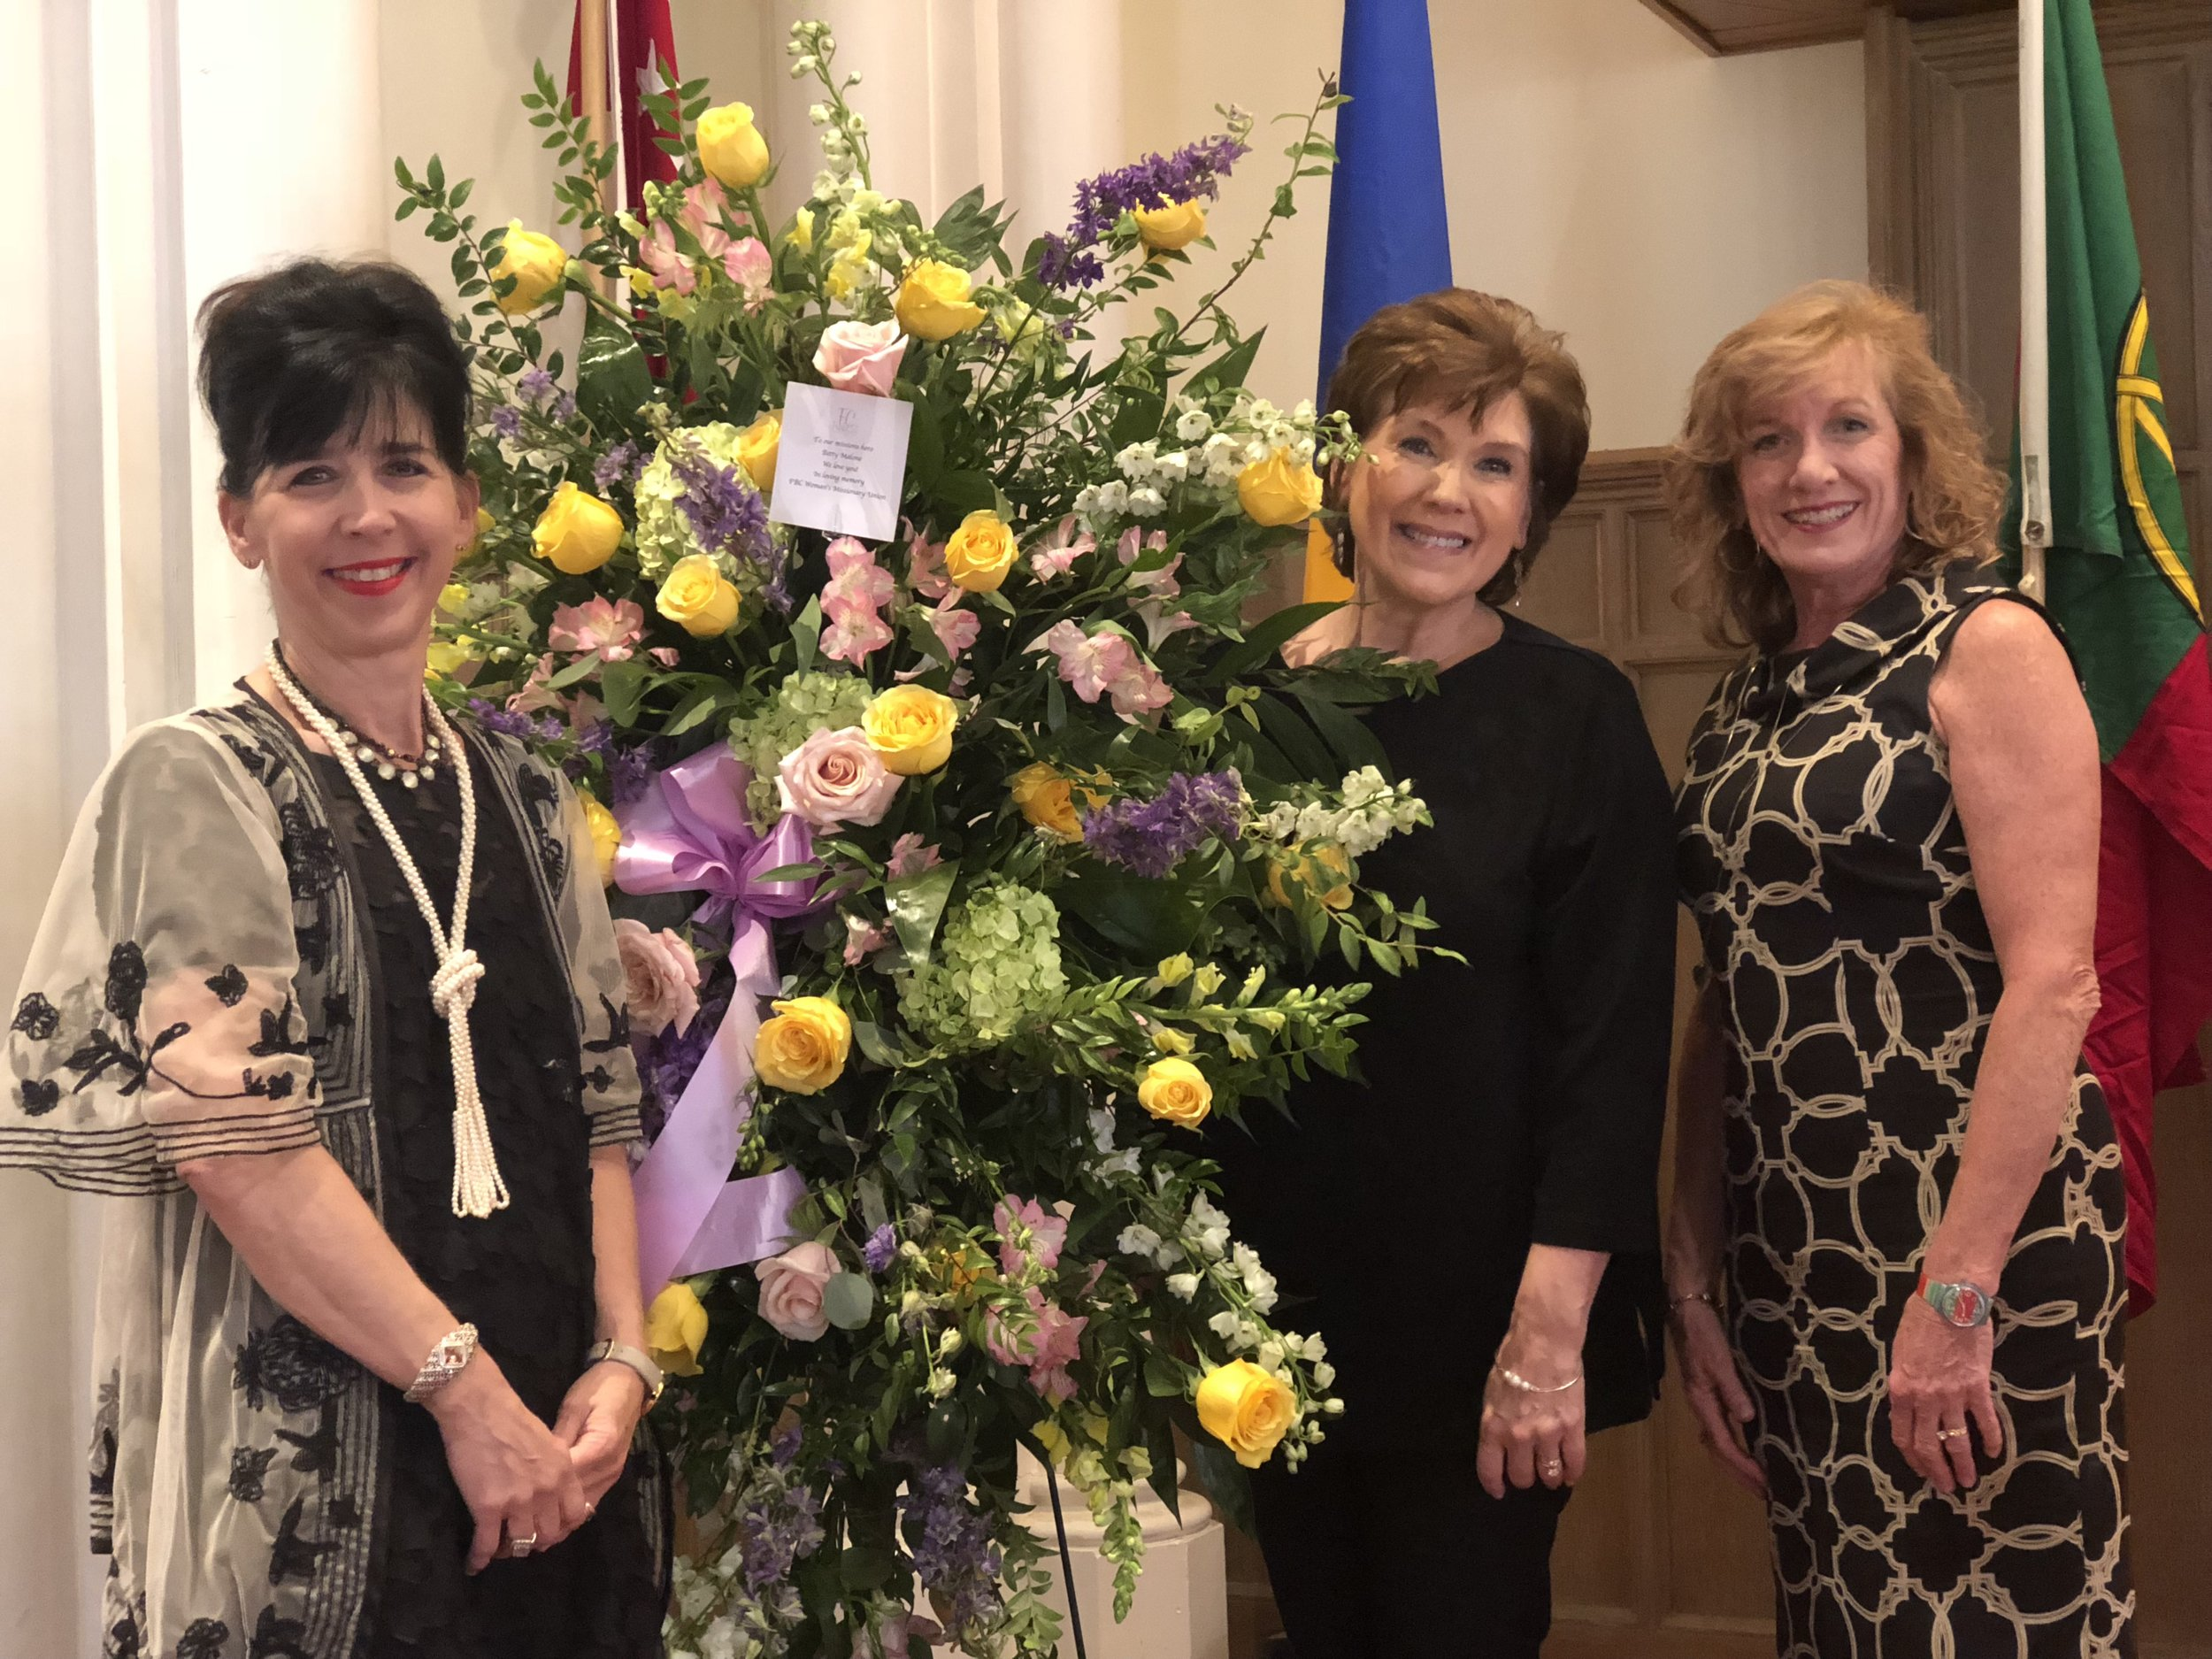 Cindy Townsend, center, remembers Betty Malone as a woman who prayed for the nations and supported missions throughout her life.